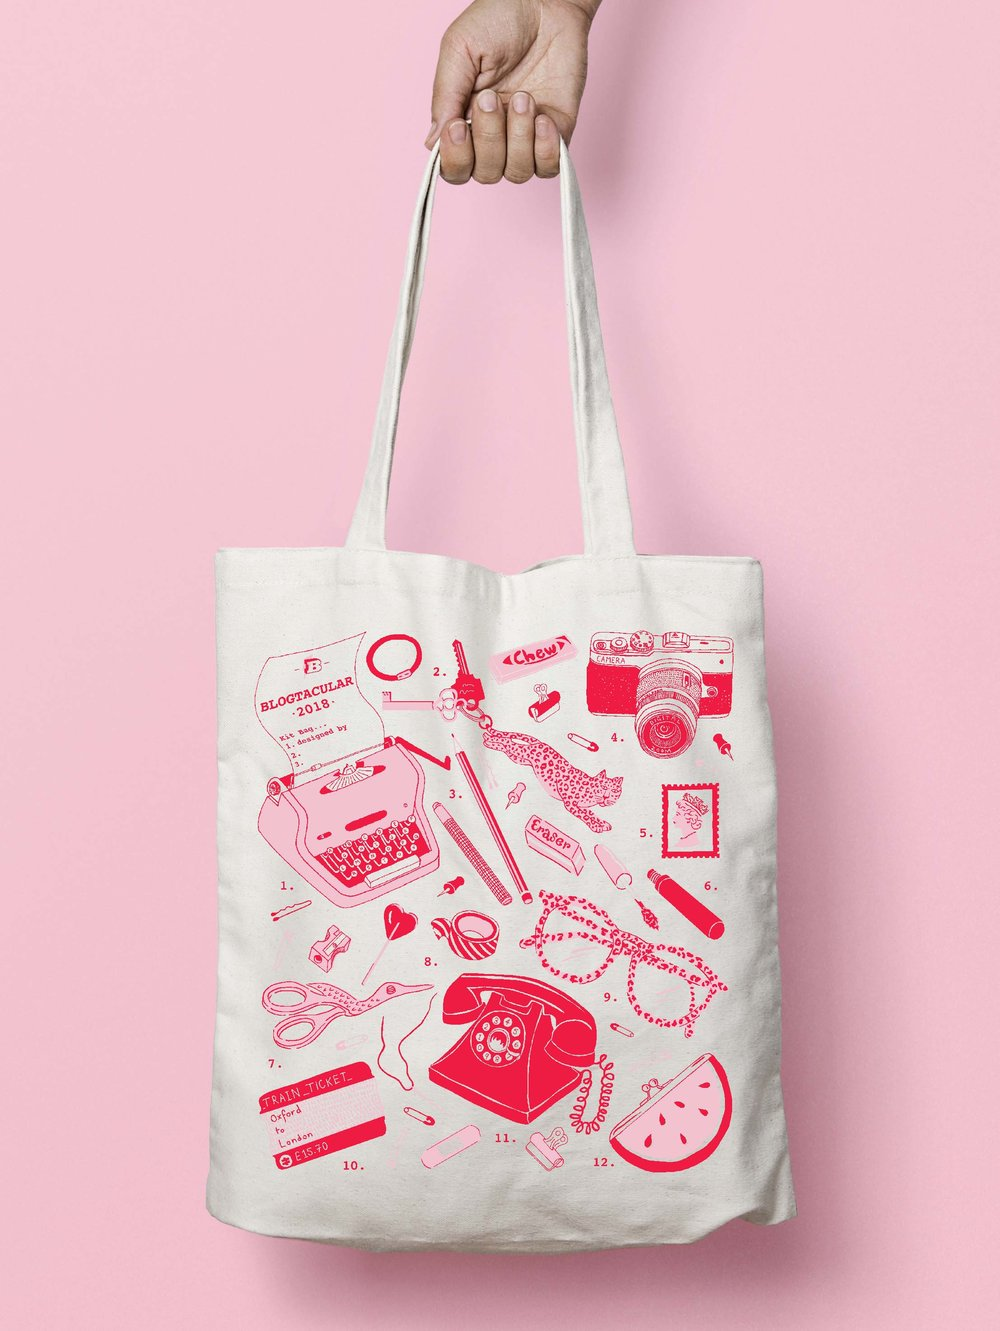 Blogtacular-kit-bag-tote-2018.jpg